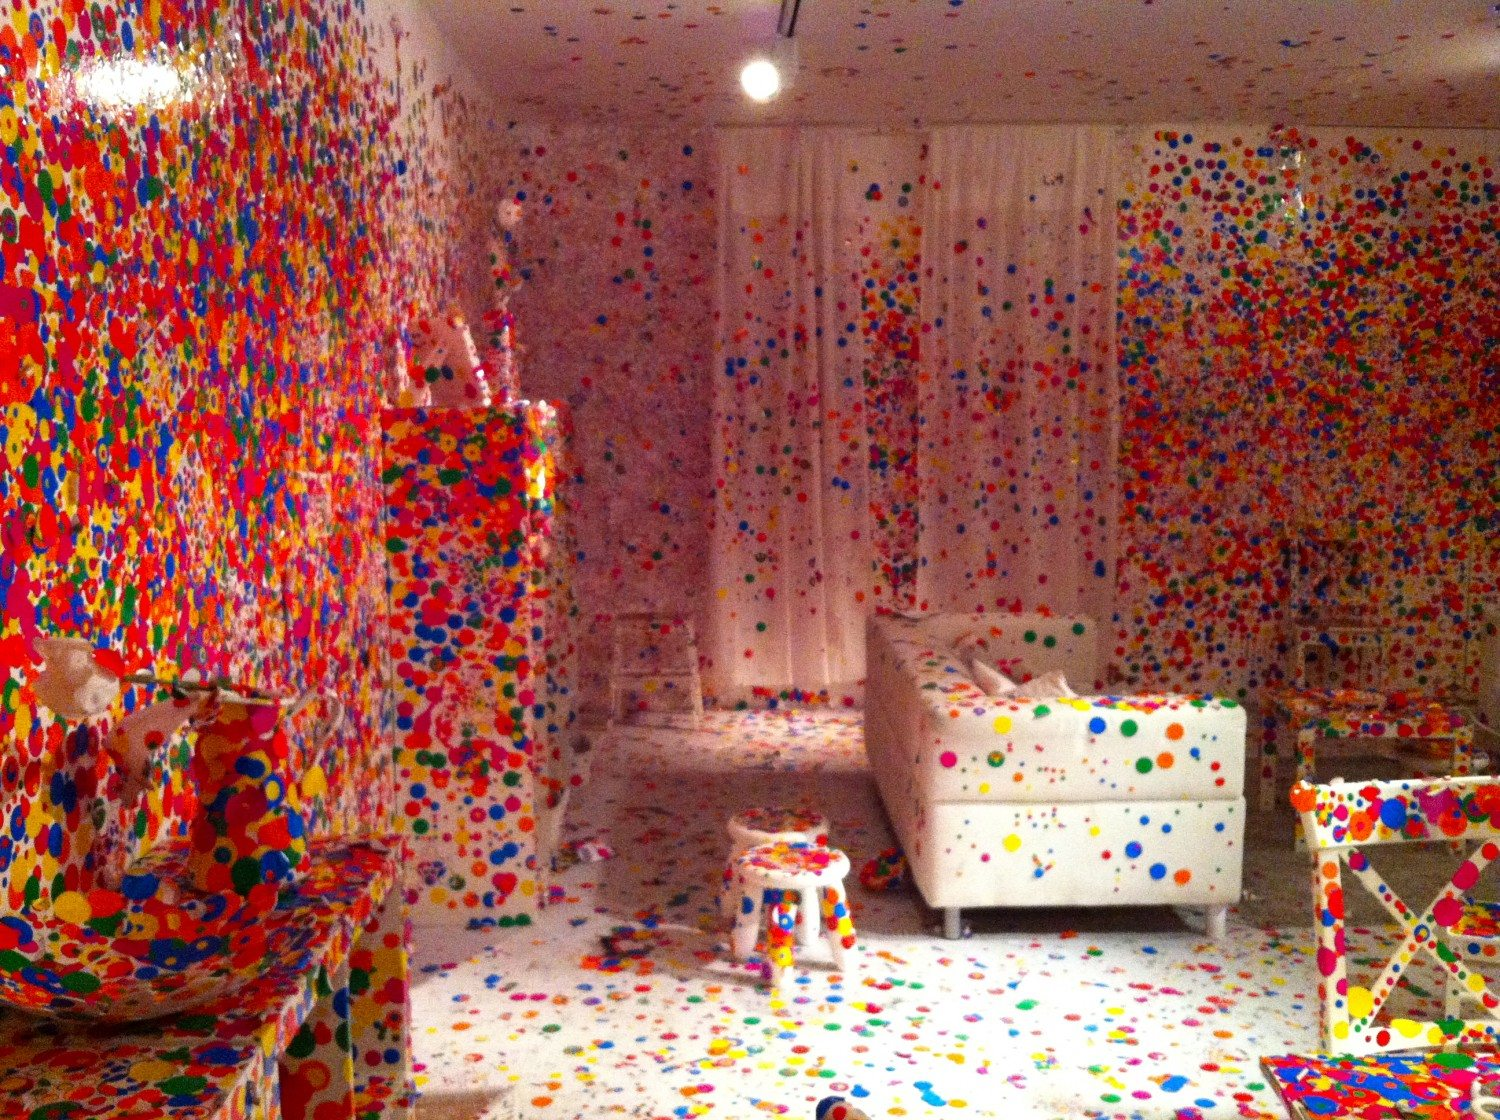 The Obliteration Room Exhibit Downtown Magazine